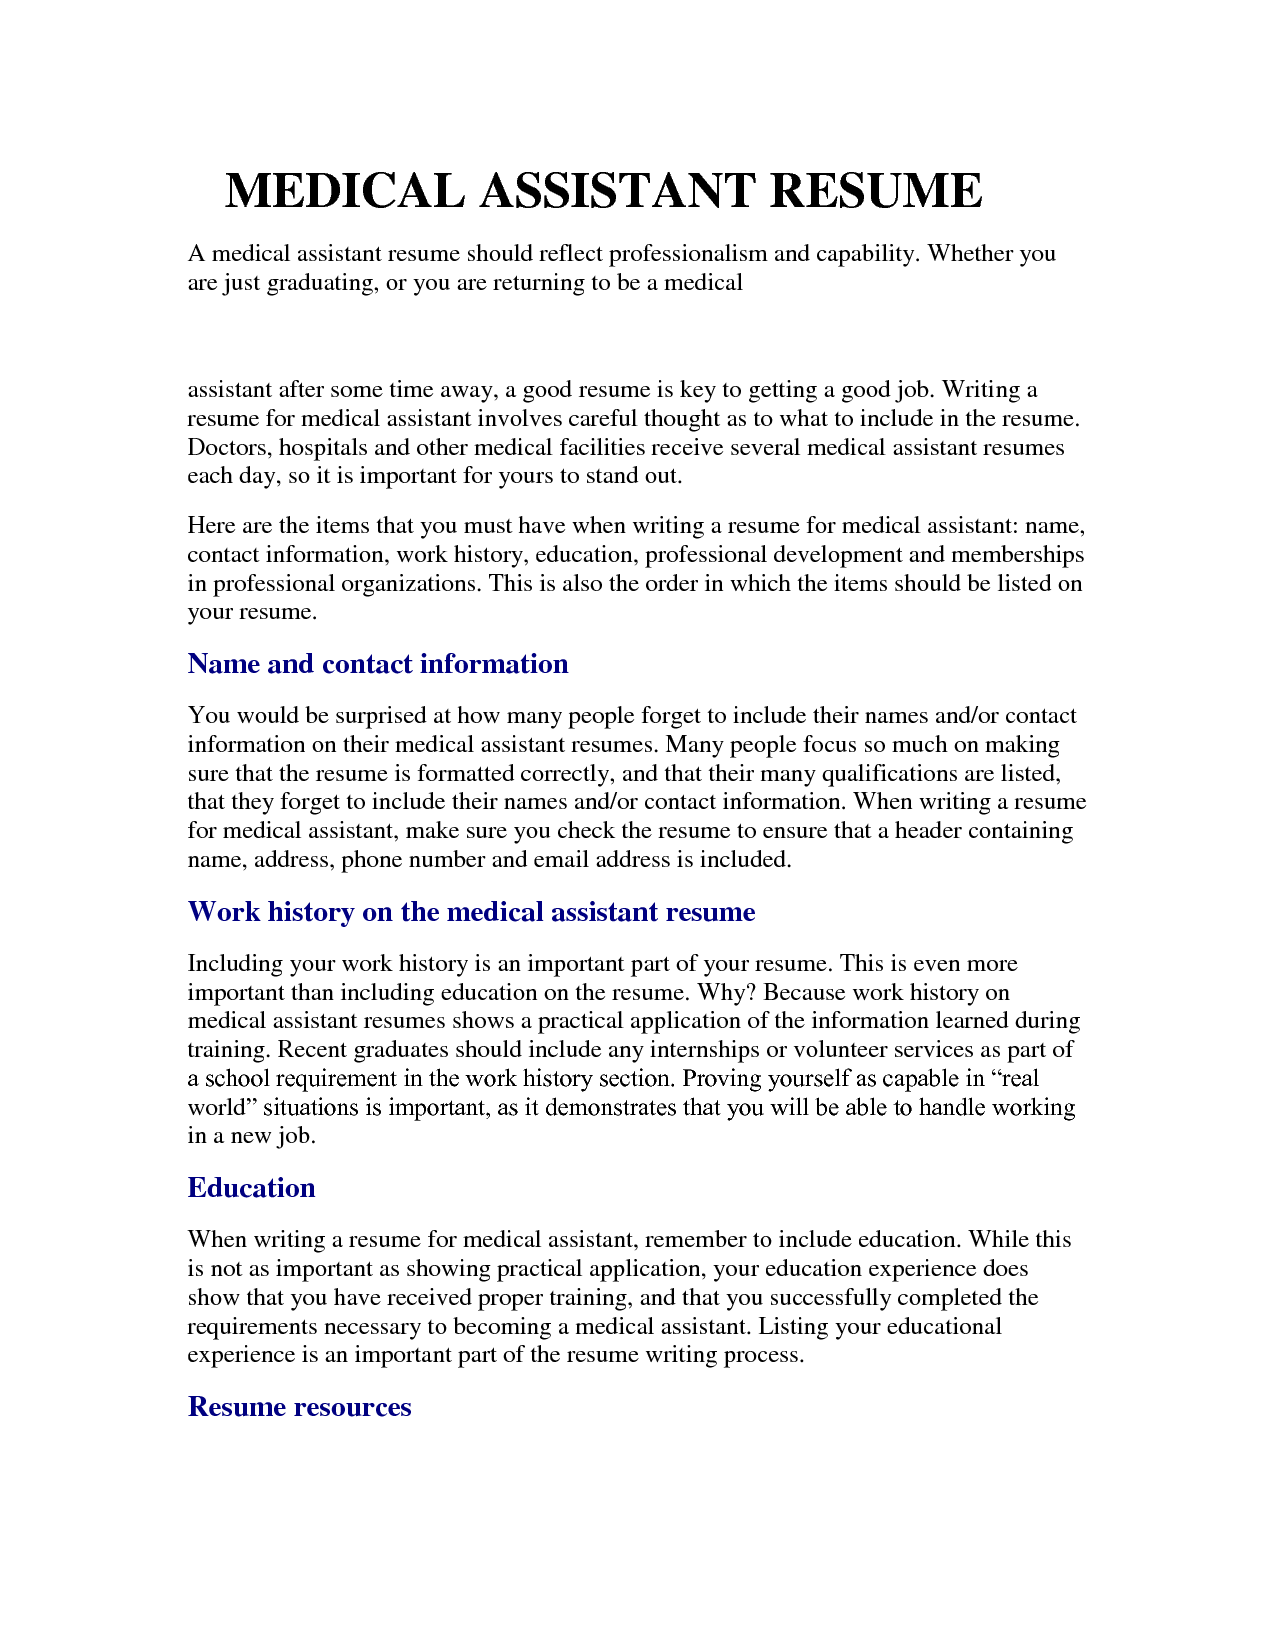 Resume For Hospital Job Medical Resume Builder Templates And Examples Healthcare Attorney